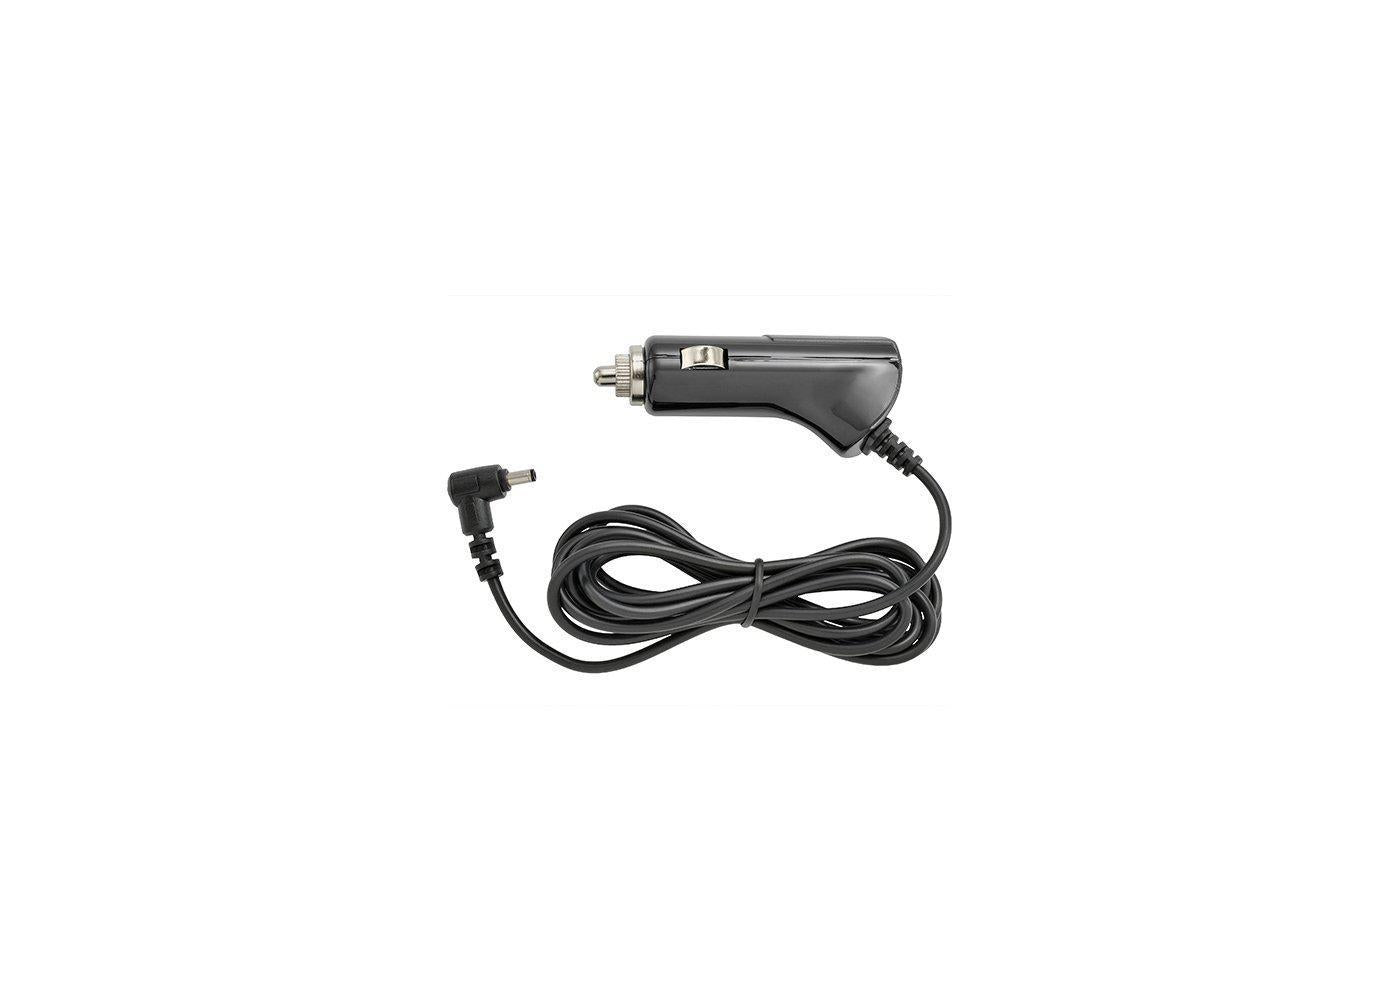 Straight Power Cord with Auxiliary USB Charge Port for Cobra iRadar - cobra.com